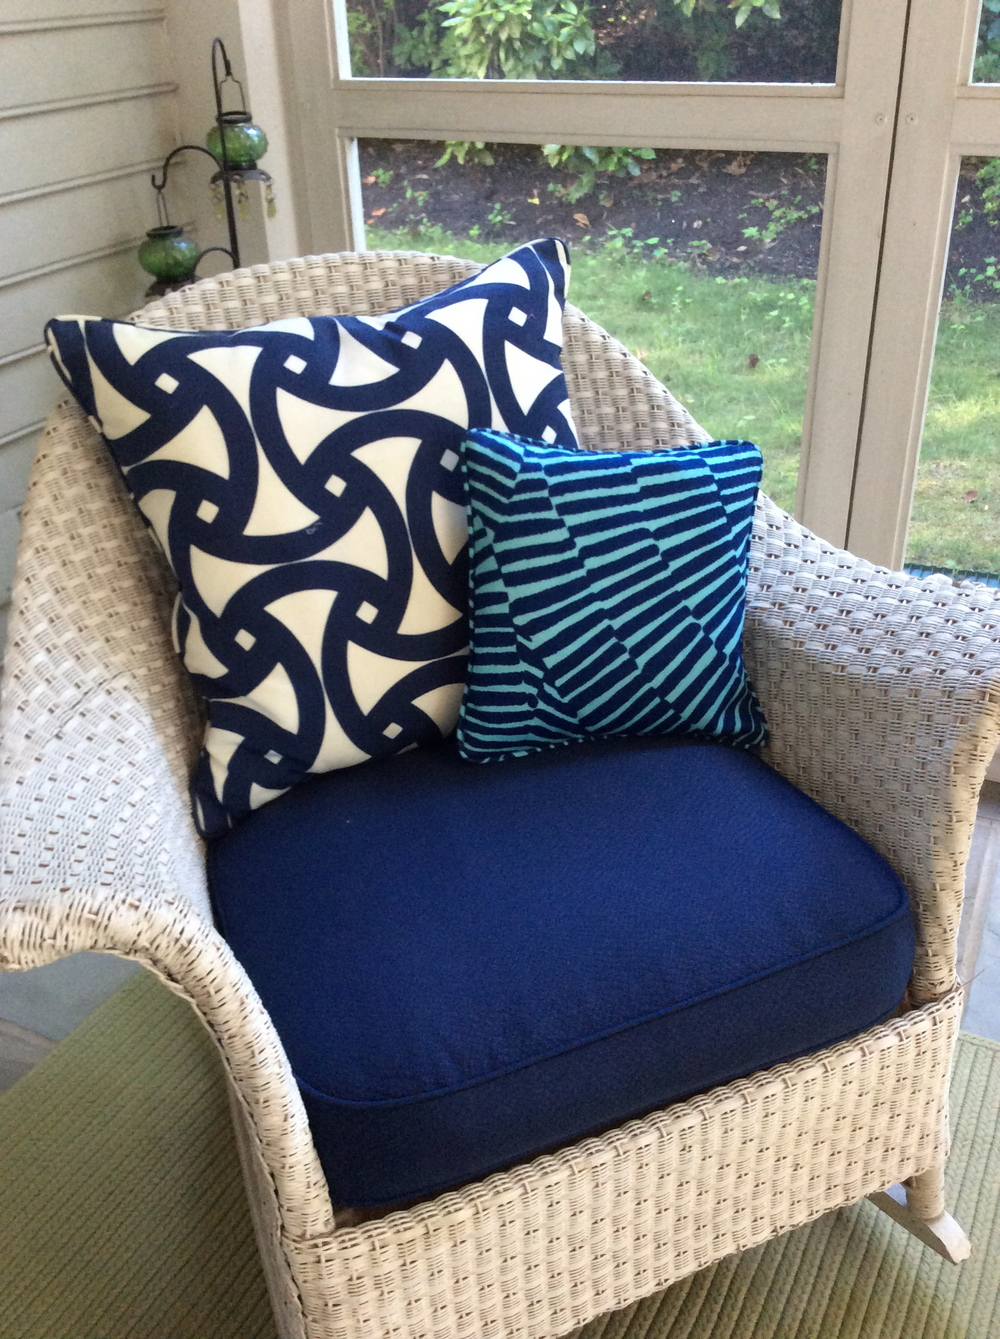 At The End, We Guarantee The Perfect Fit And Durability Of Your New Cushions .